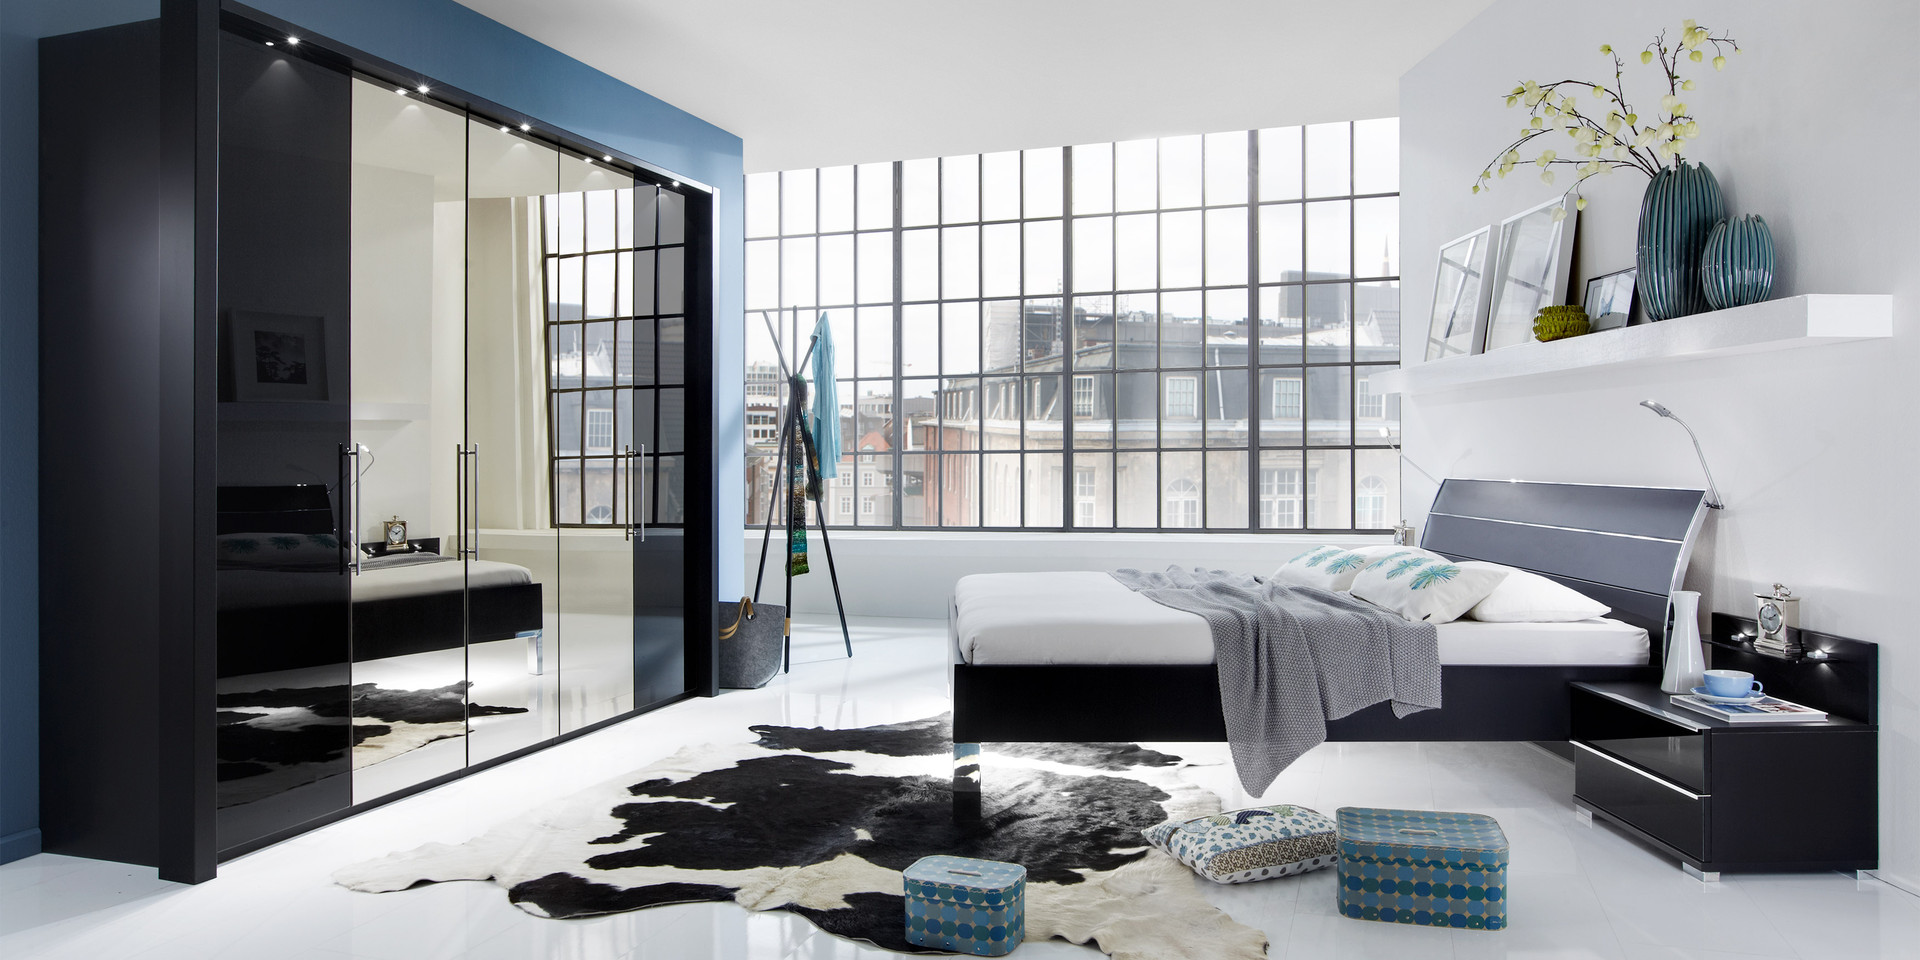 entdecken sie hier das programm loft m belhersteller wiemann. Black Bedroom Furniture Sets. Home Design Ideas